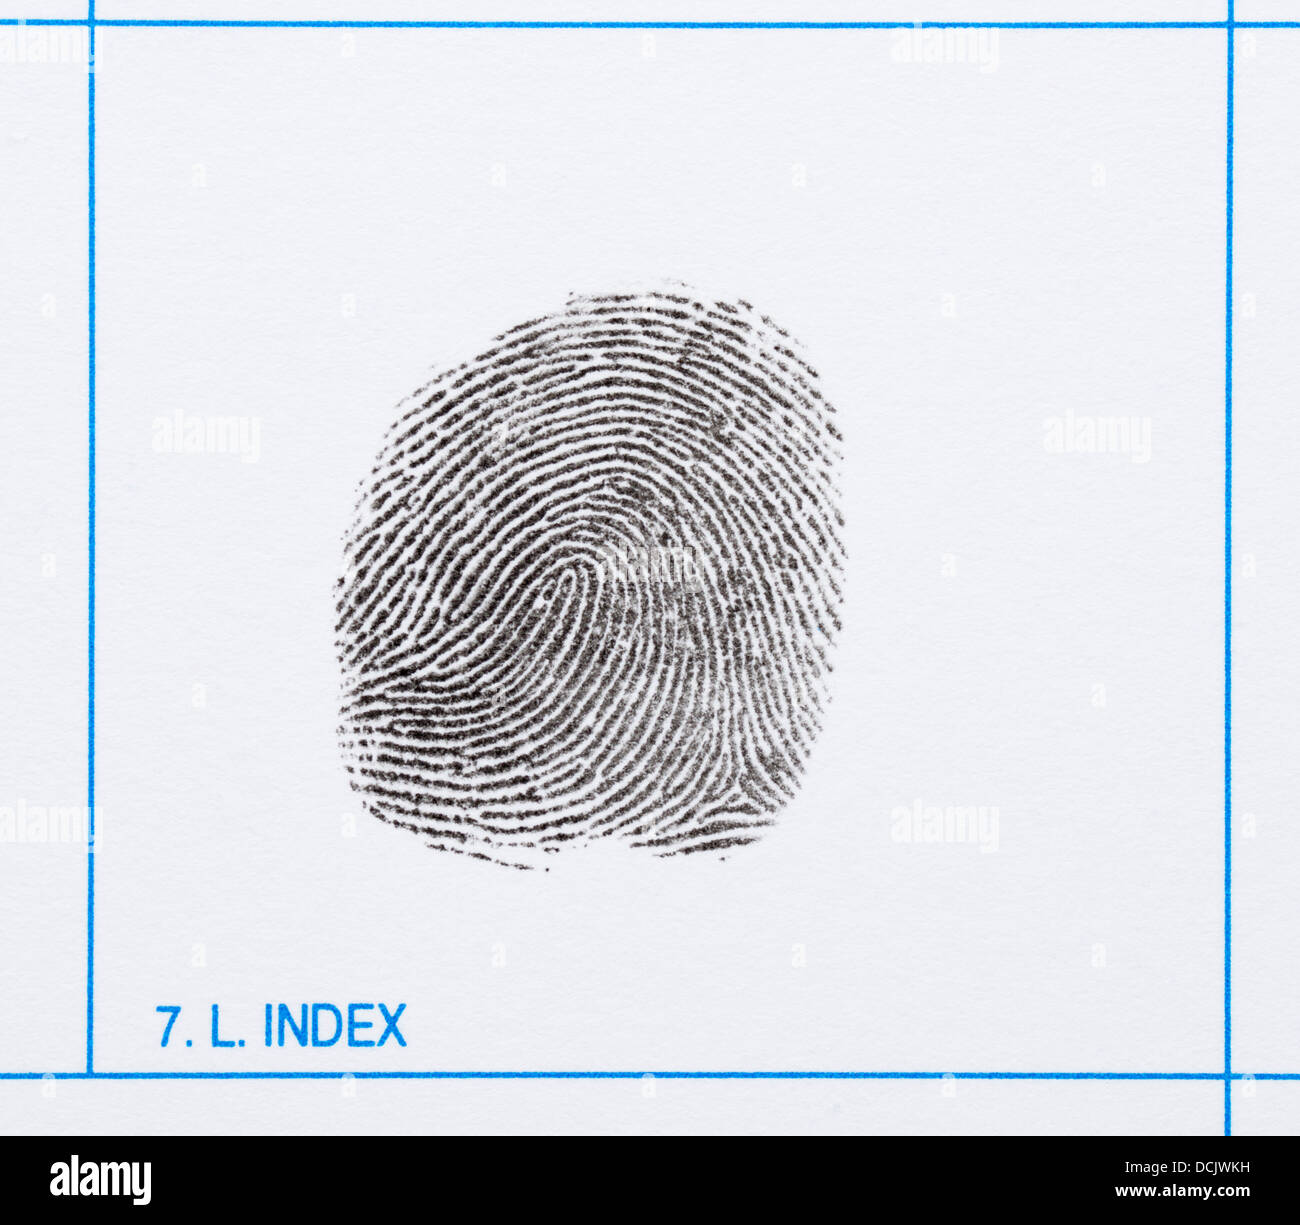 Fingerprint of a left index finger showing a whorl and various minutiae - Stock Image